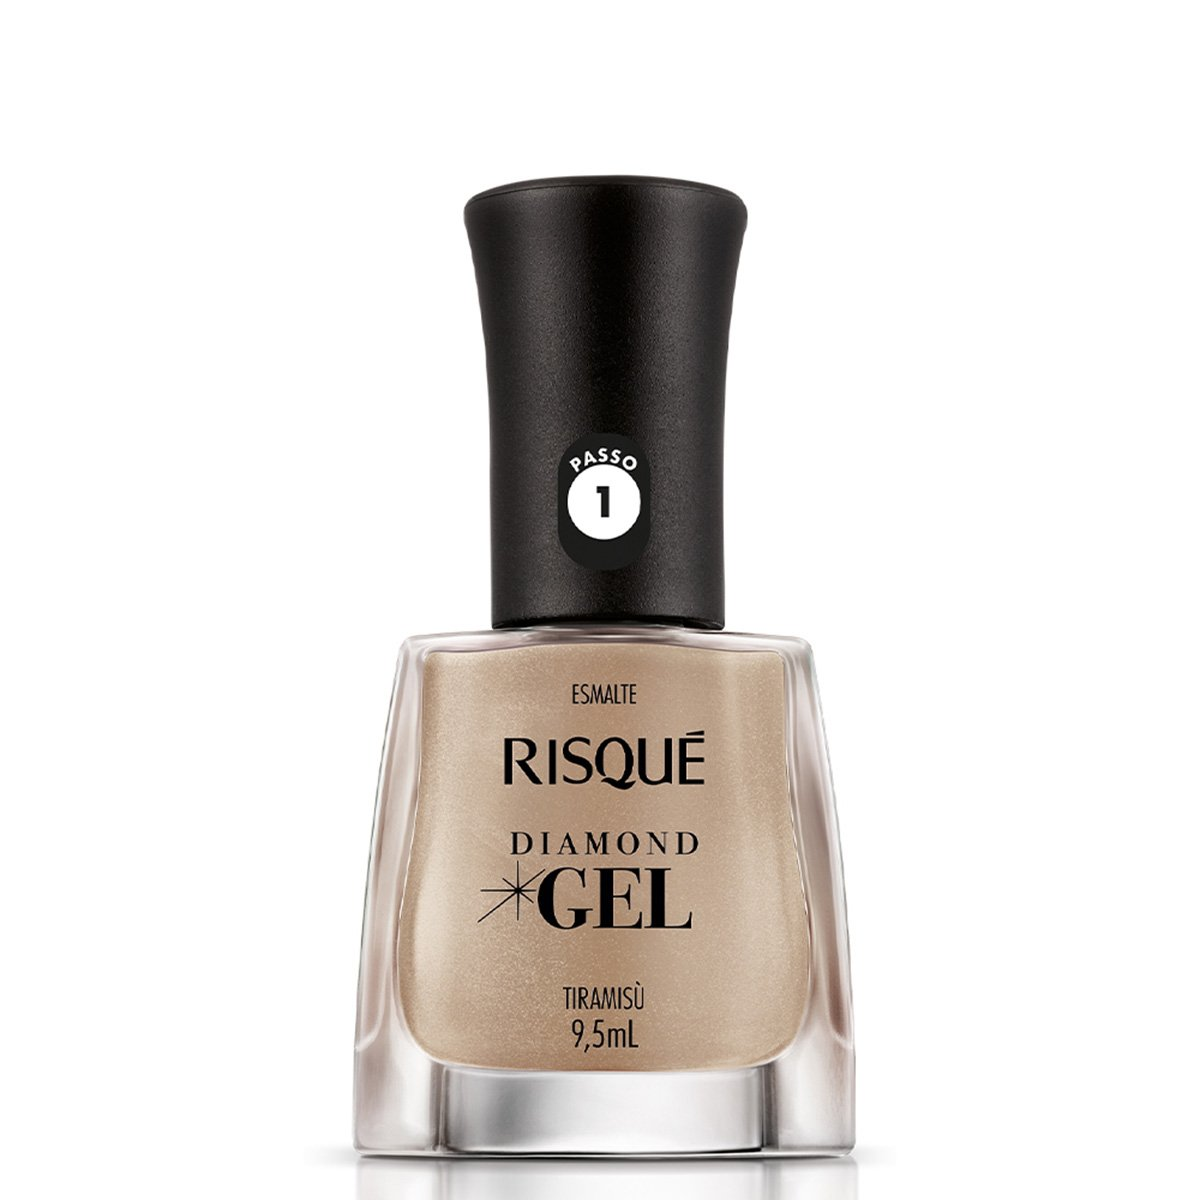 Esmalte Risqué Cremoso Diamond Gel Tiramisu - 9,5ml